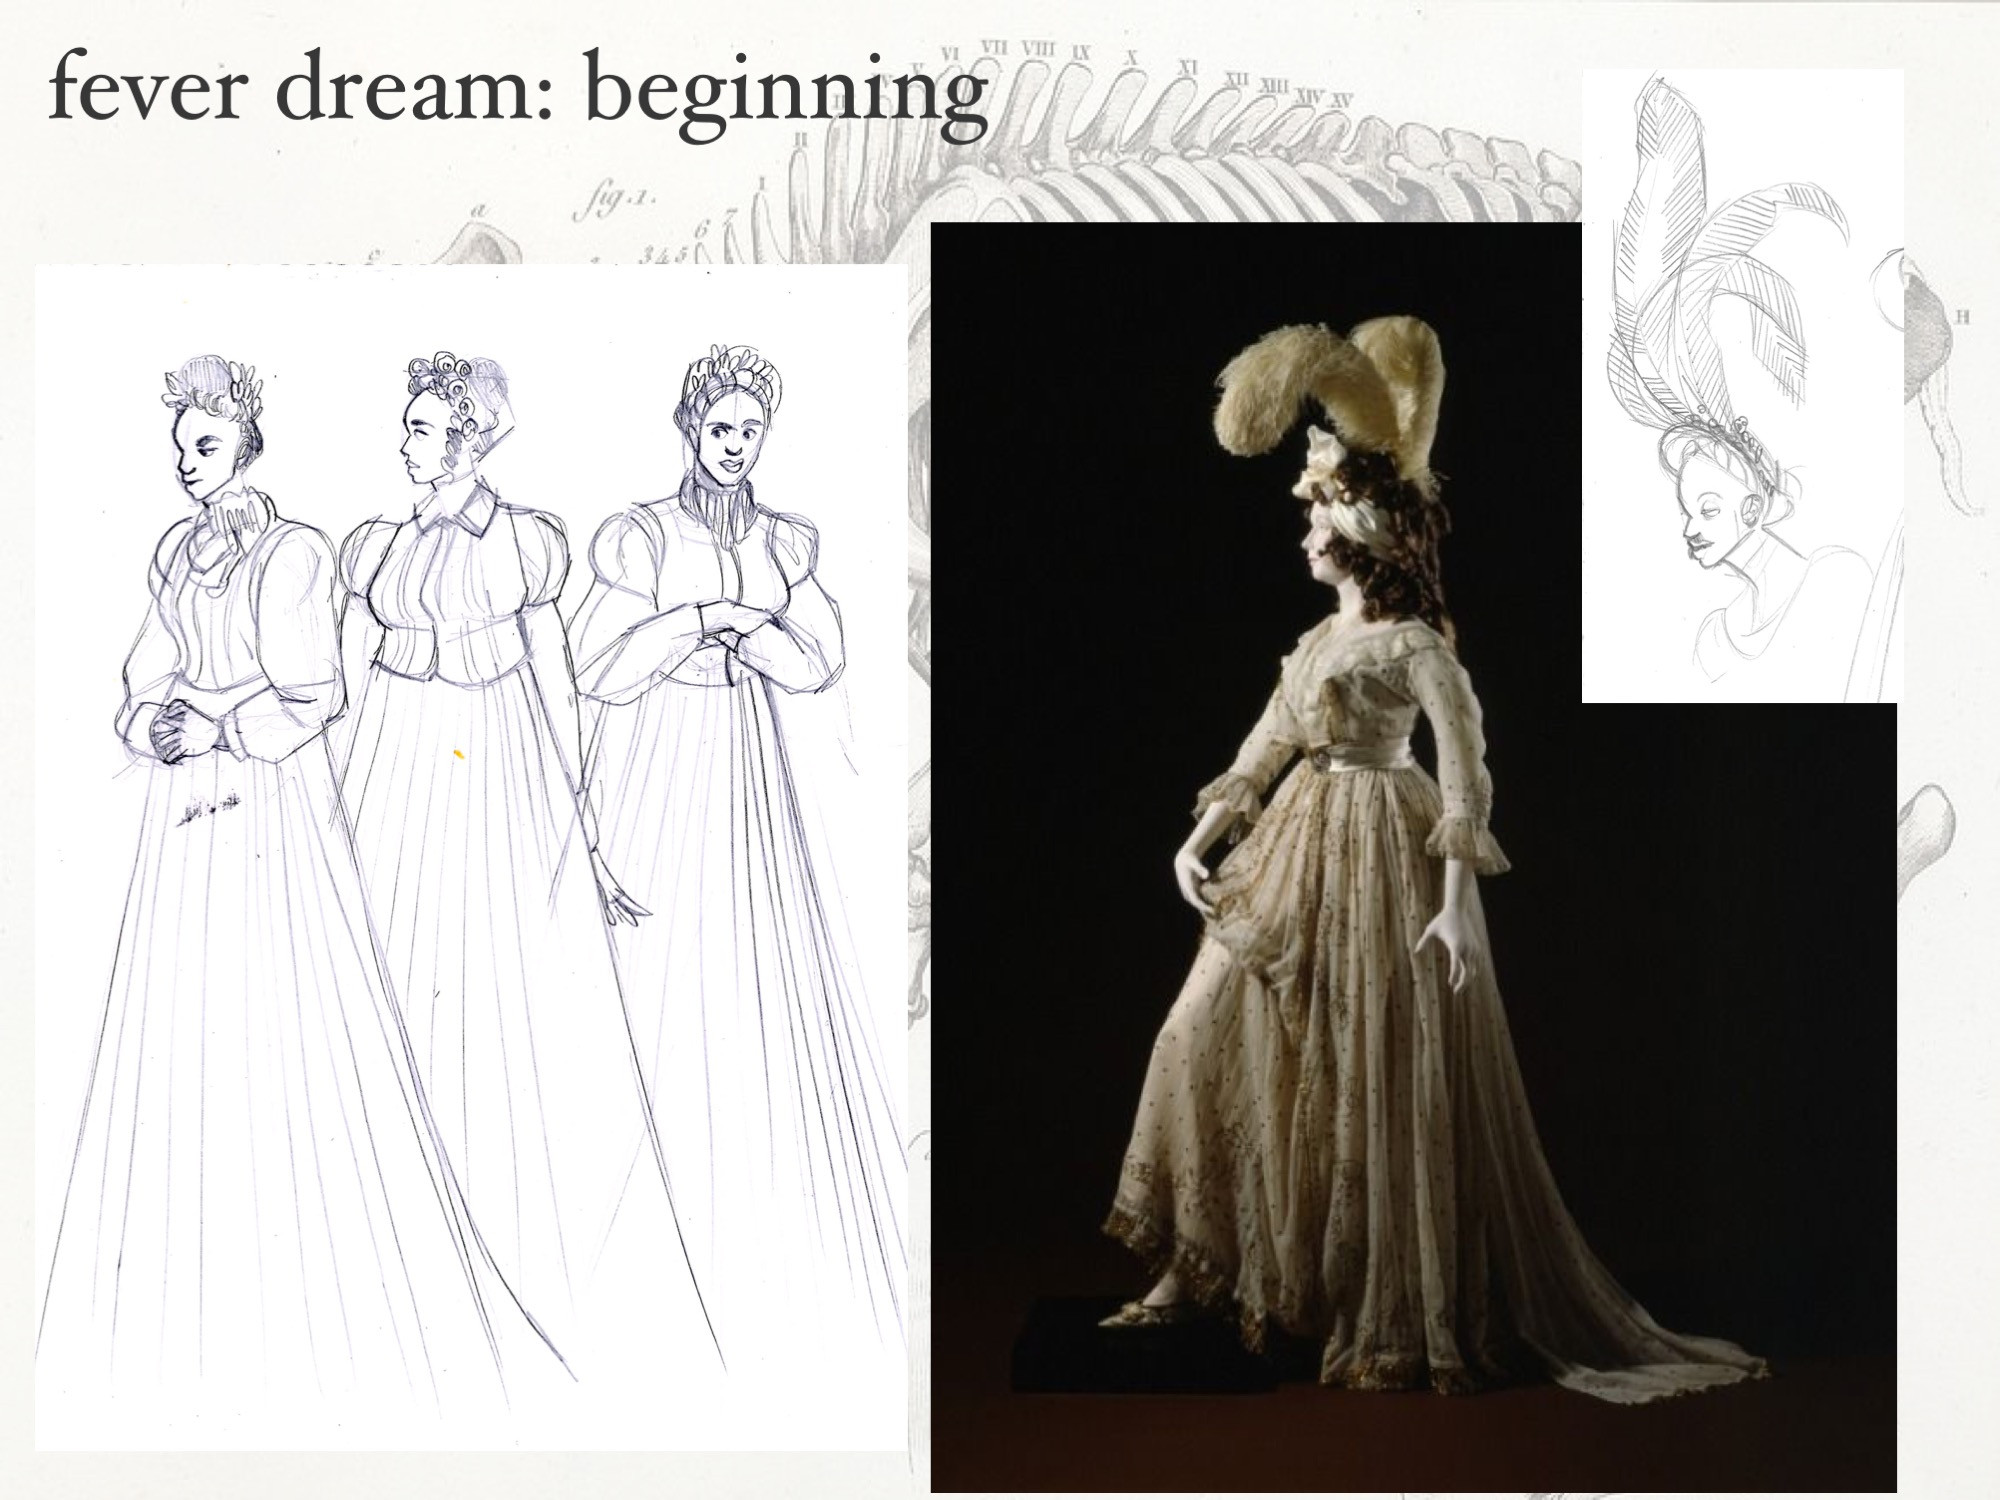 Dream Dancer: reference. 1810s ballgowns, ghostly chiffon fabric and feathers. All built for movement and disorientation on stage.